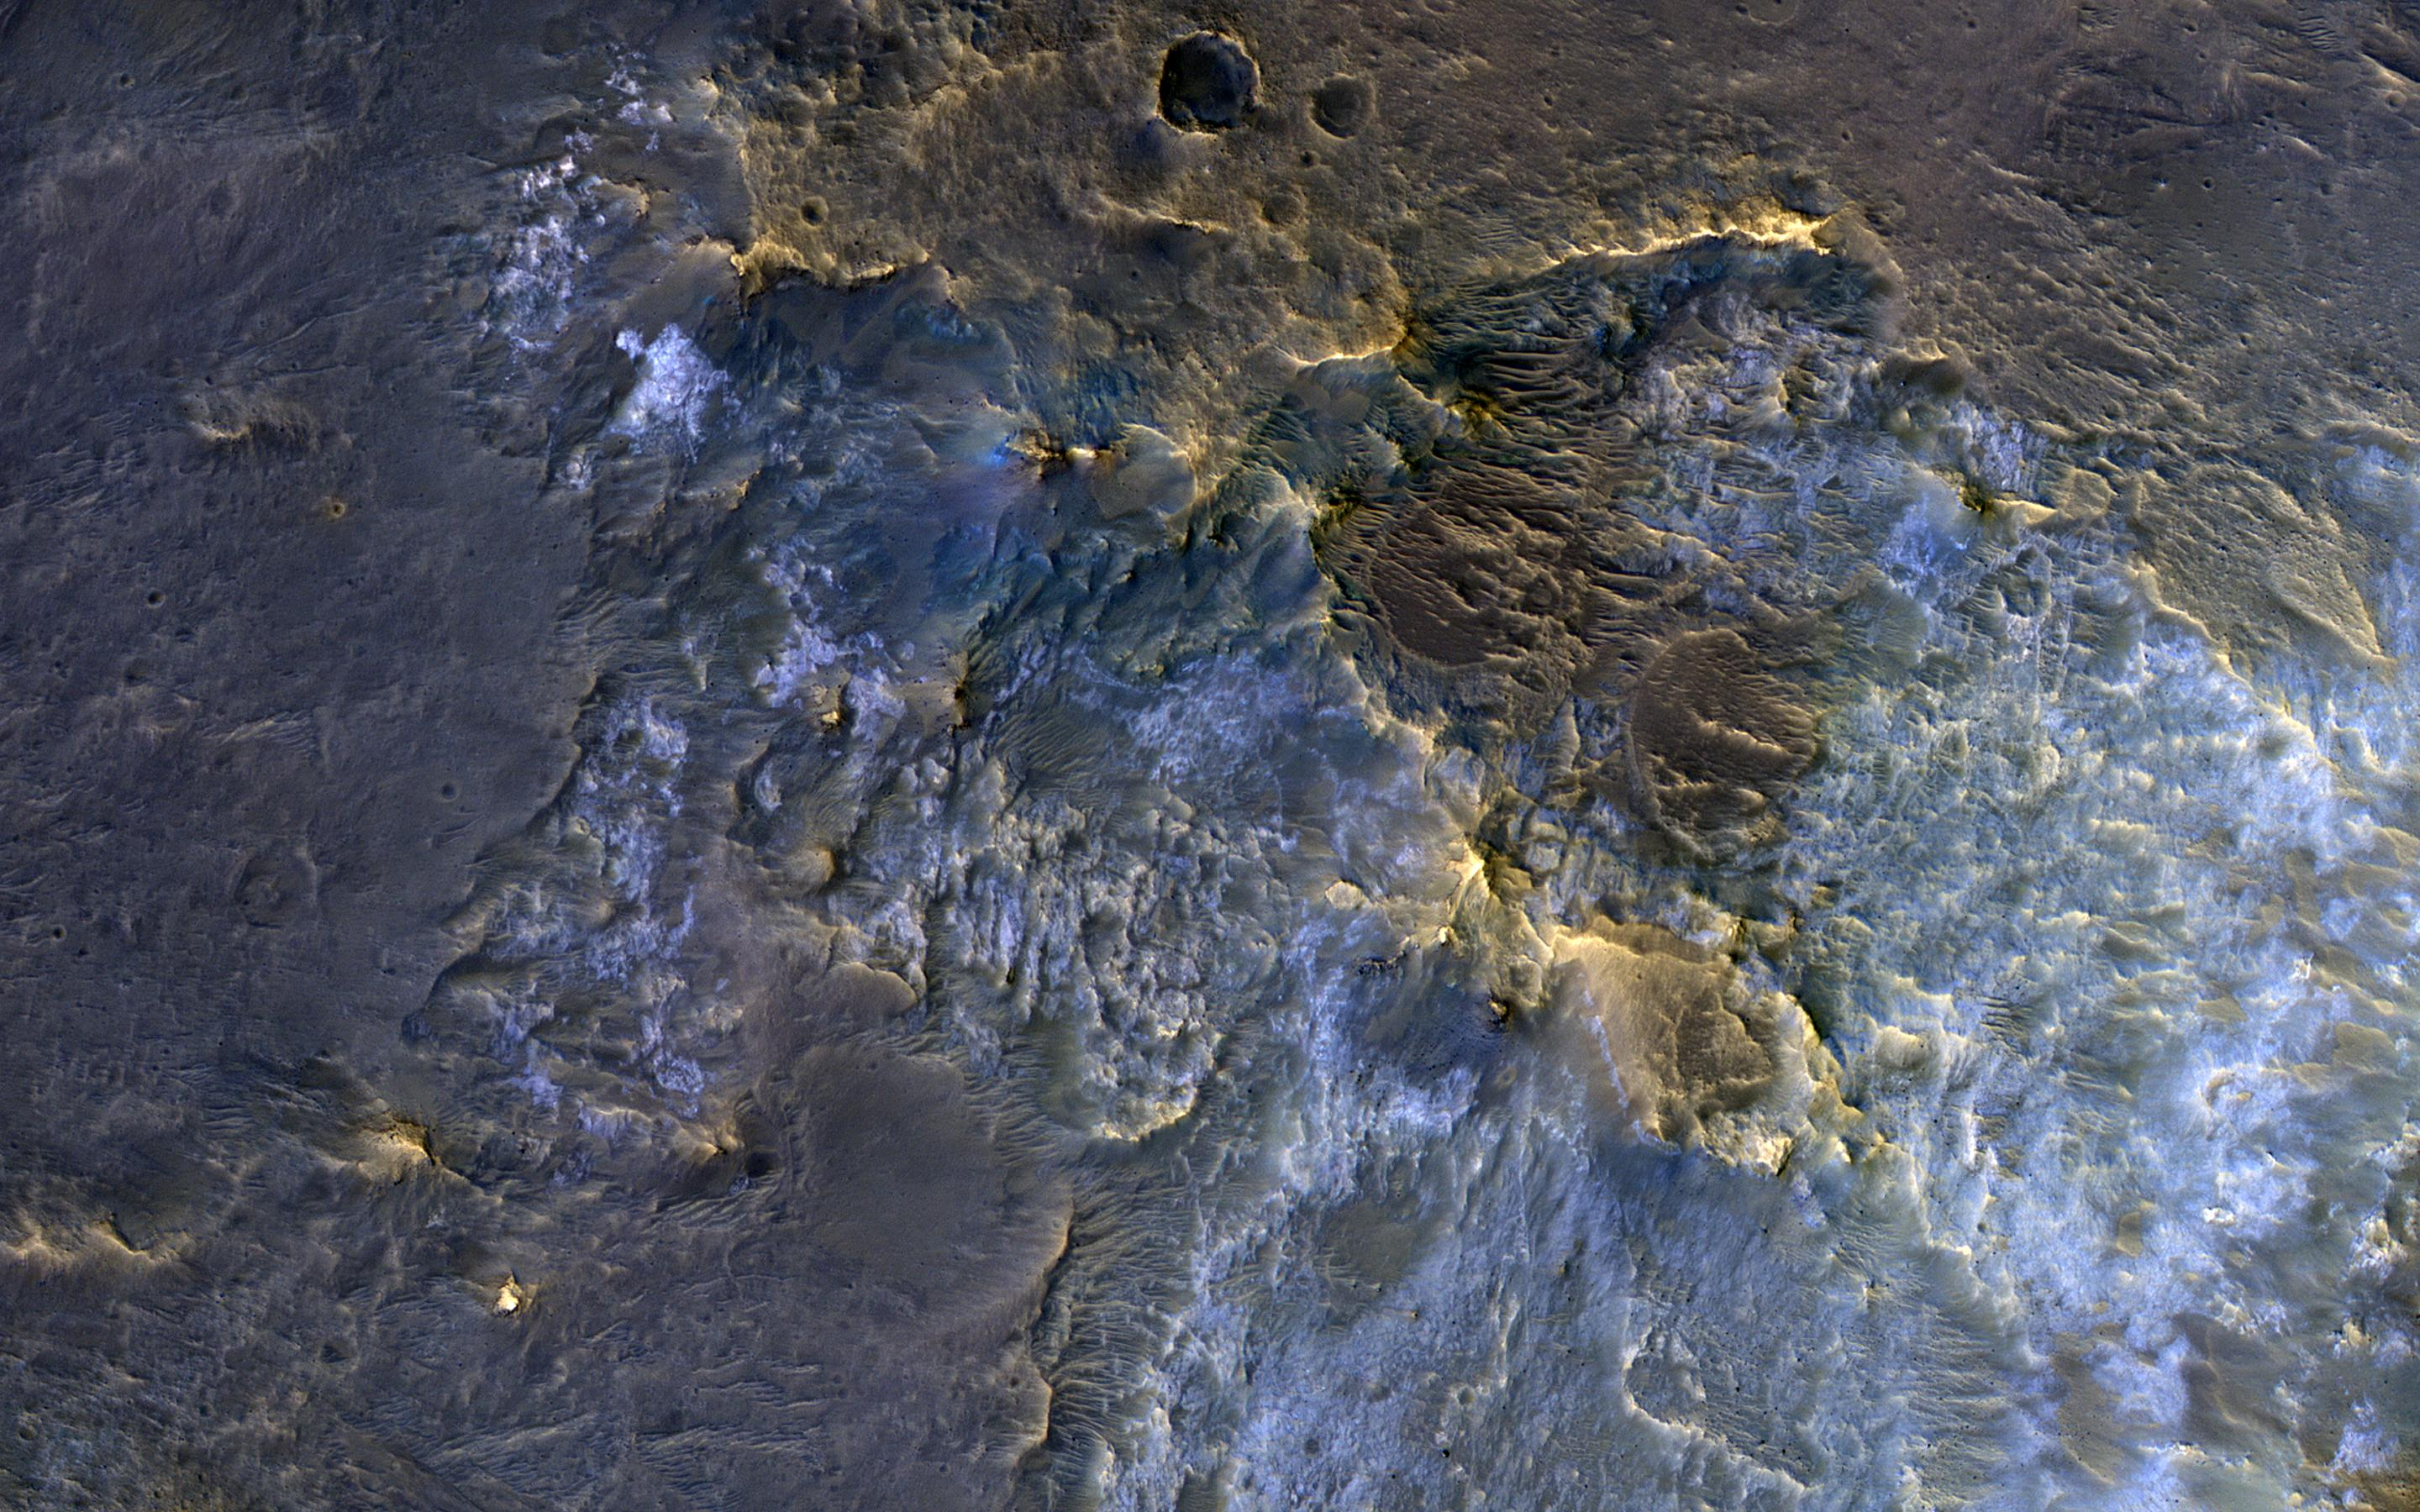 This image acquired on November 30, 2018 by NASAs Mars Reconnaissance Orbiter, shows a complex crater, where we see bedrock in several locations from different depths in the crust.